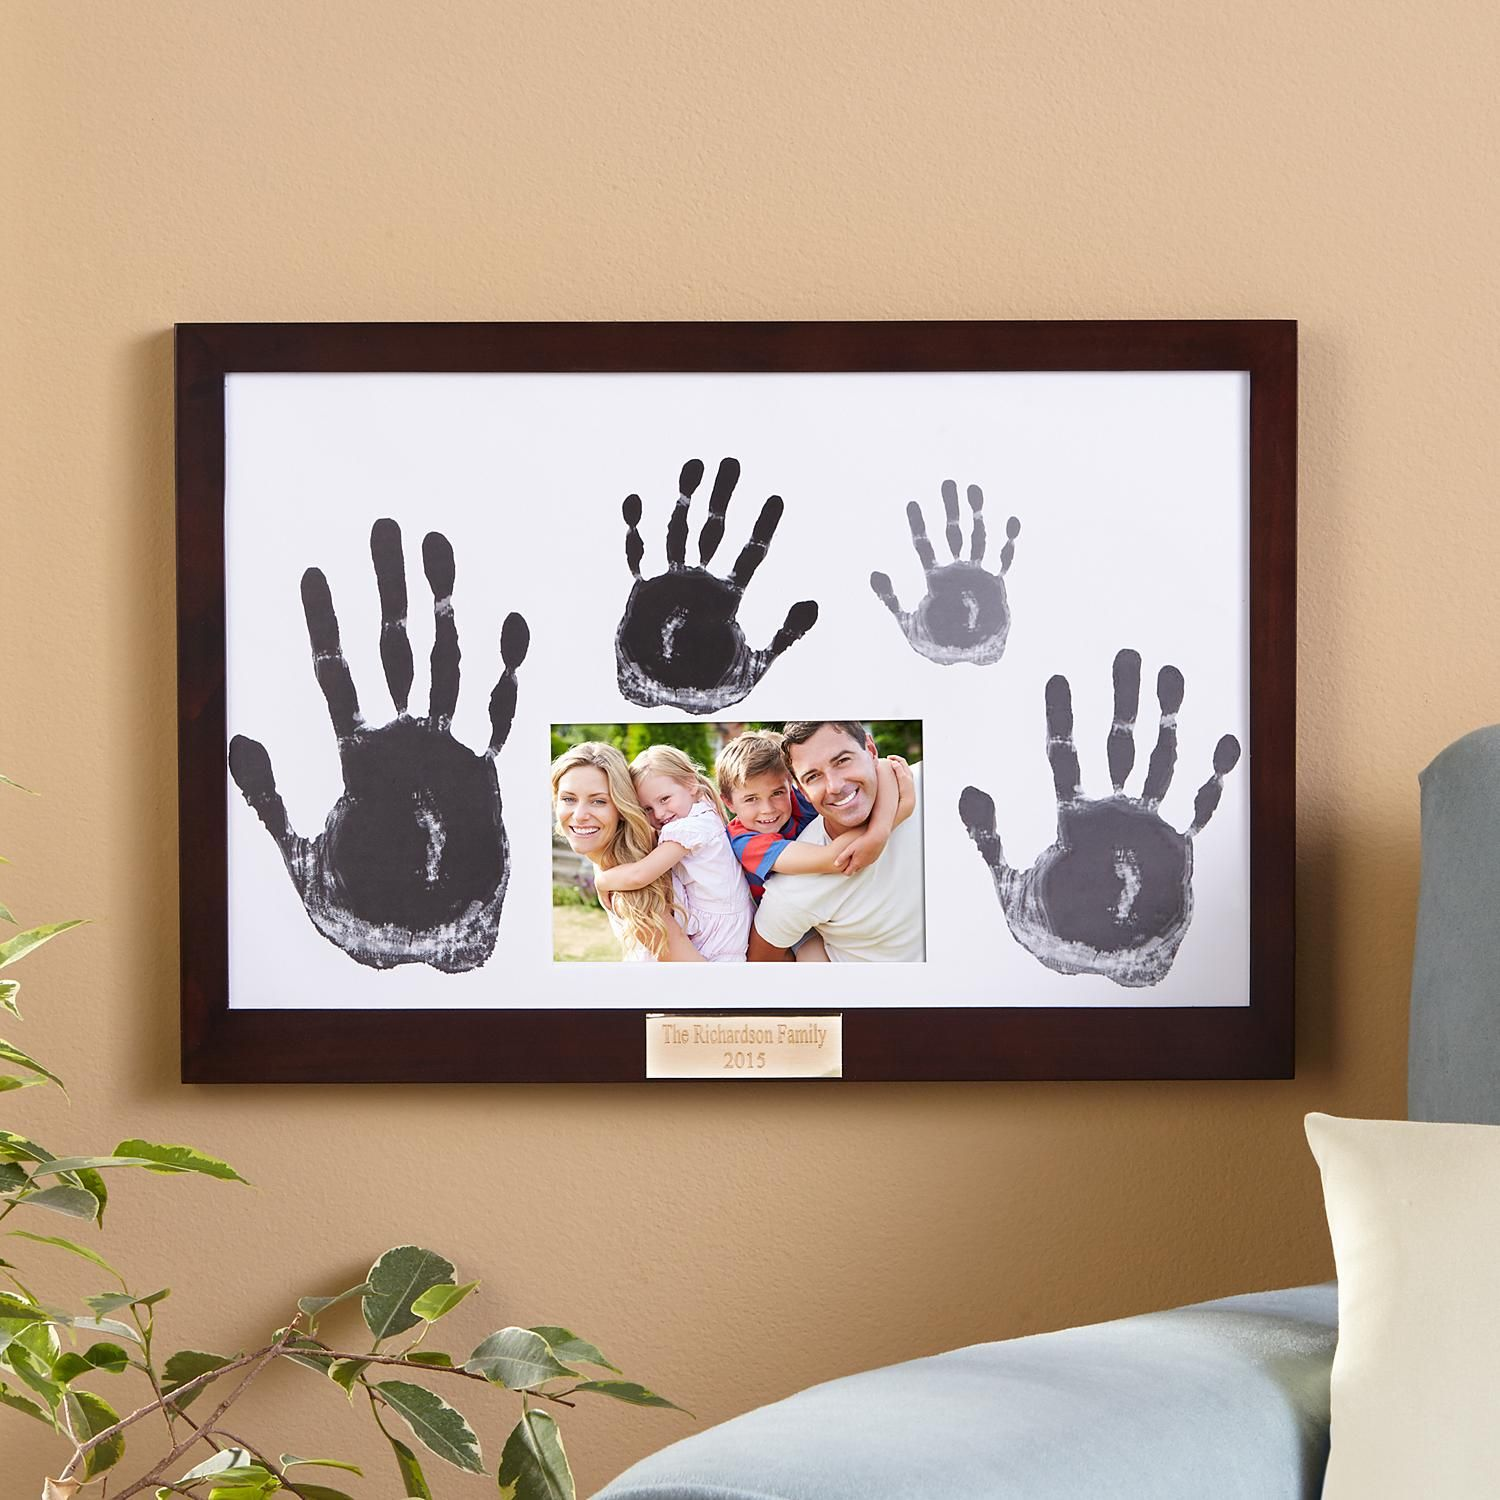 Personalized Family Handprint & Frame - Personal Creations Gifts